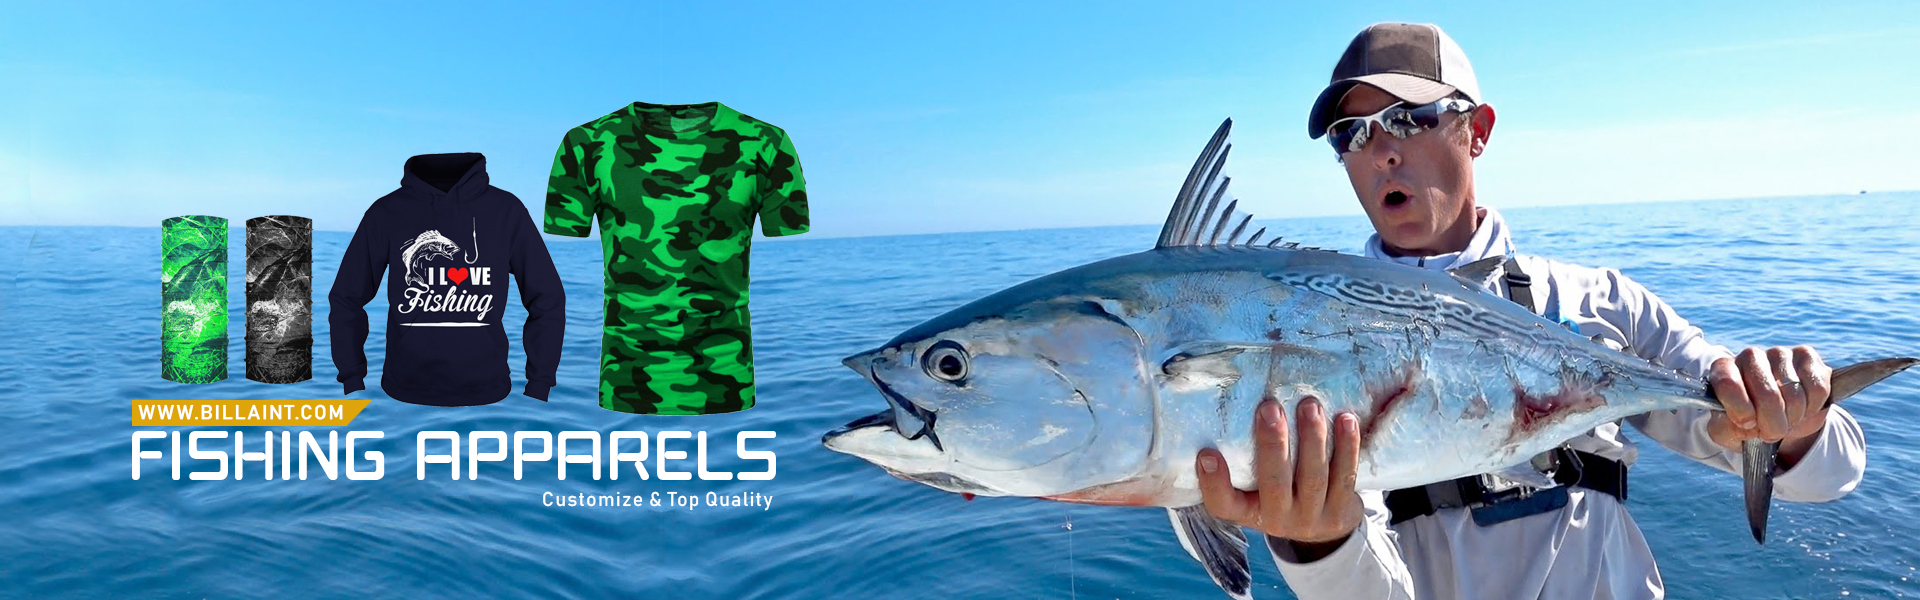 Fishing Apparels